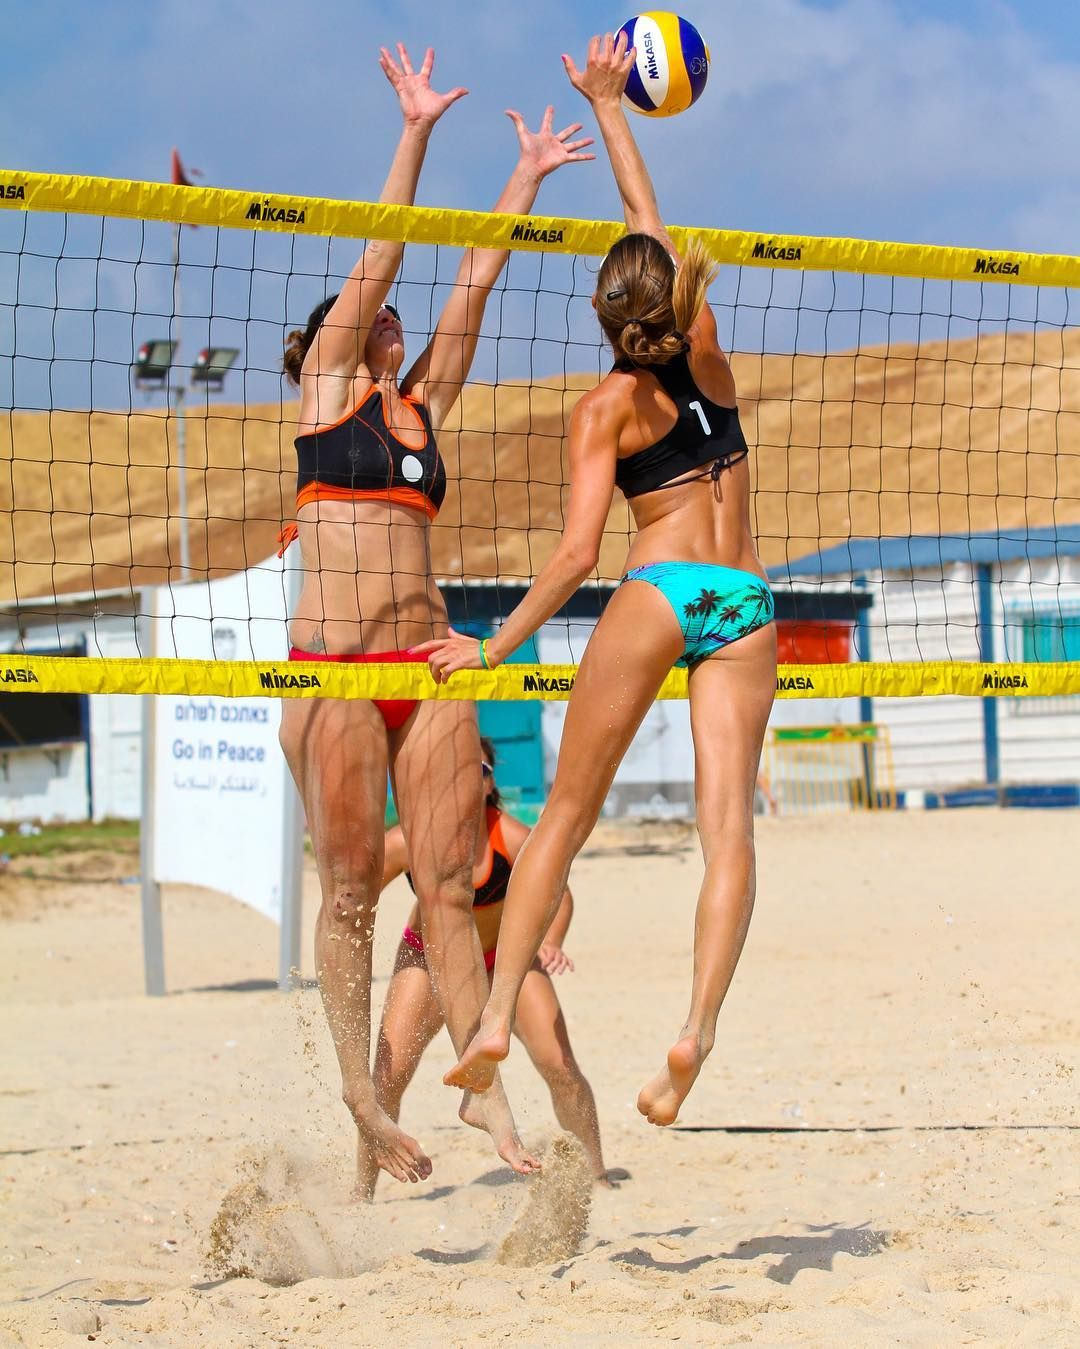 Yael Yellin Sedbon On Instagram Pass The Block And Have A Great Week Beachvolleyball Beachvolley Volleyball Beach Photo In 2020 Beach Volleyball Photo Volley